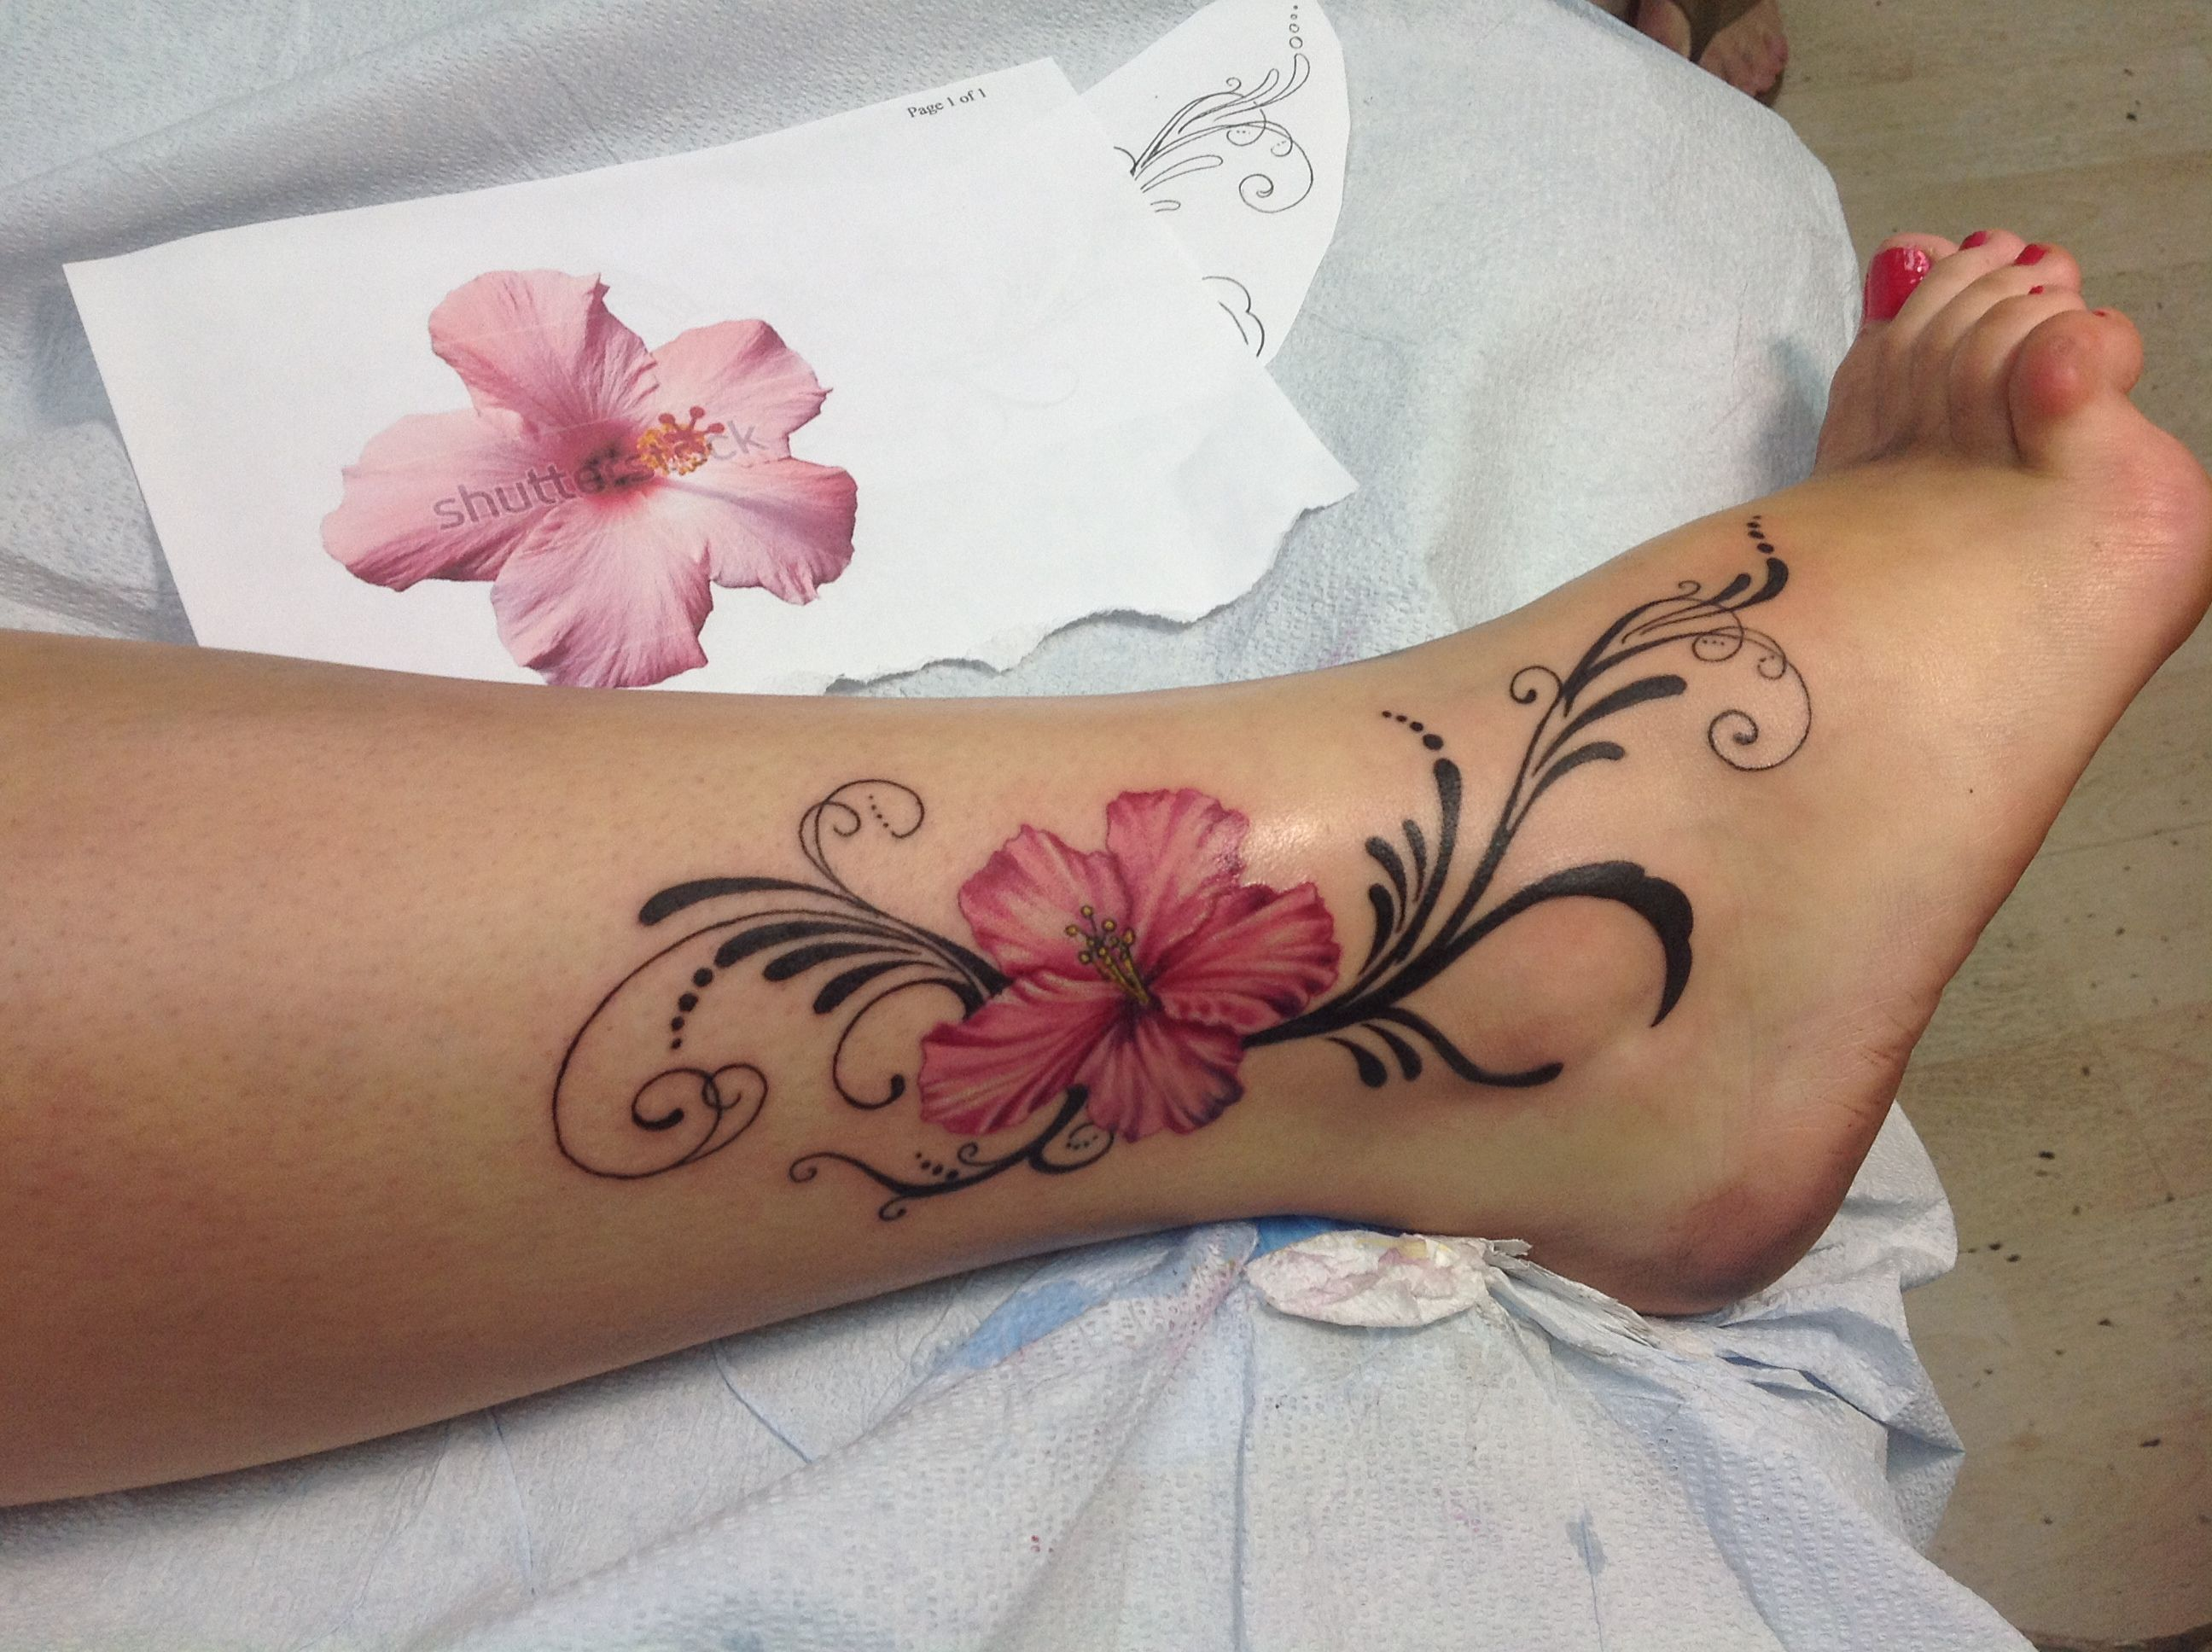 I Love My Tattoo 3 Hibiscus Flower And Swirls Tattoo Ideas